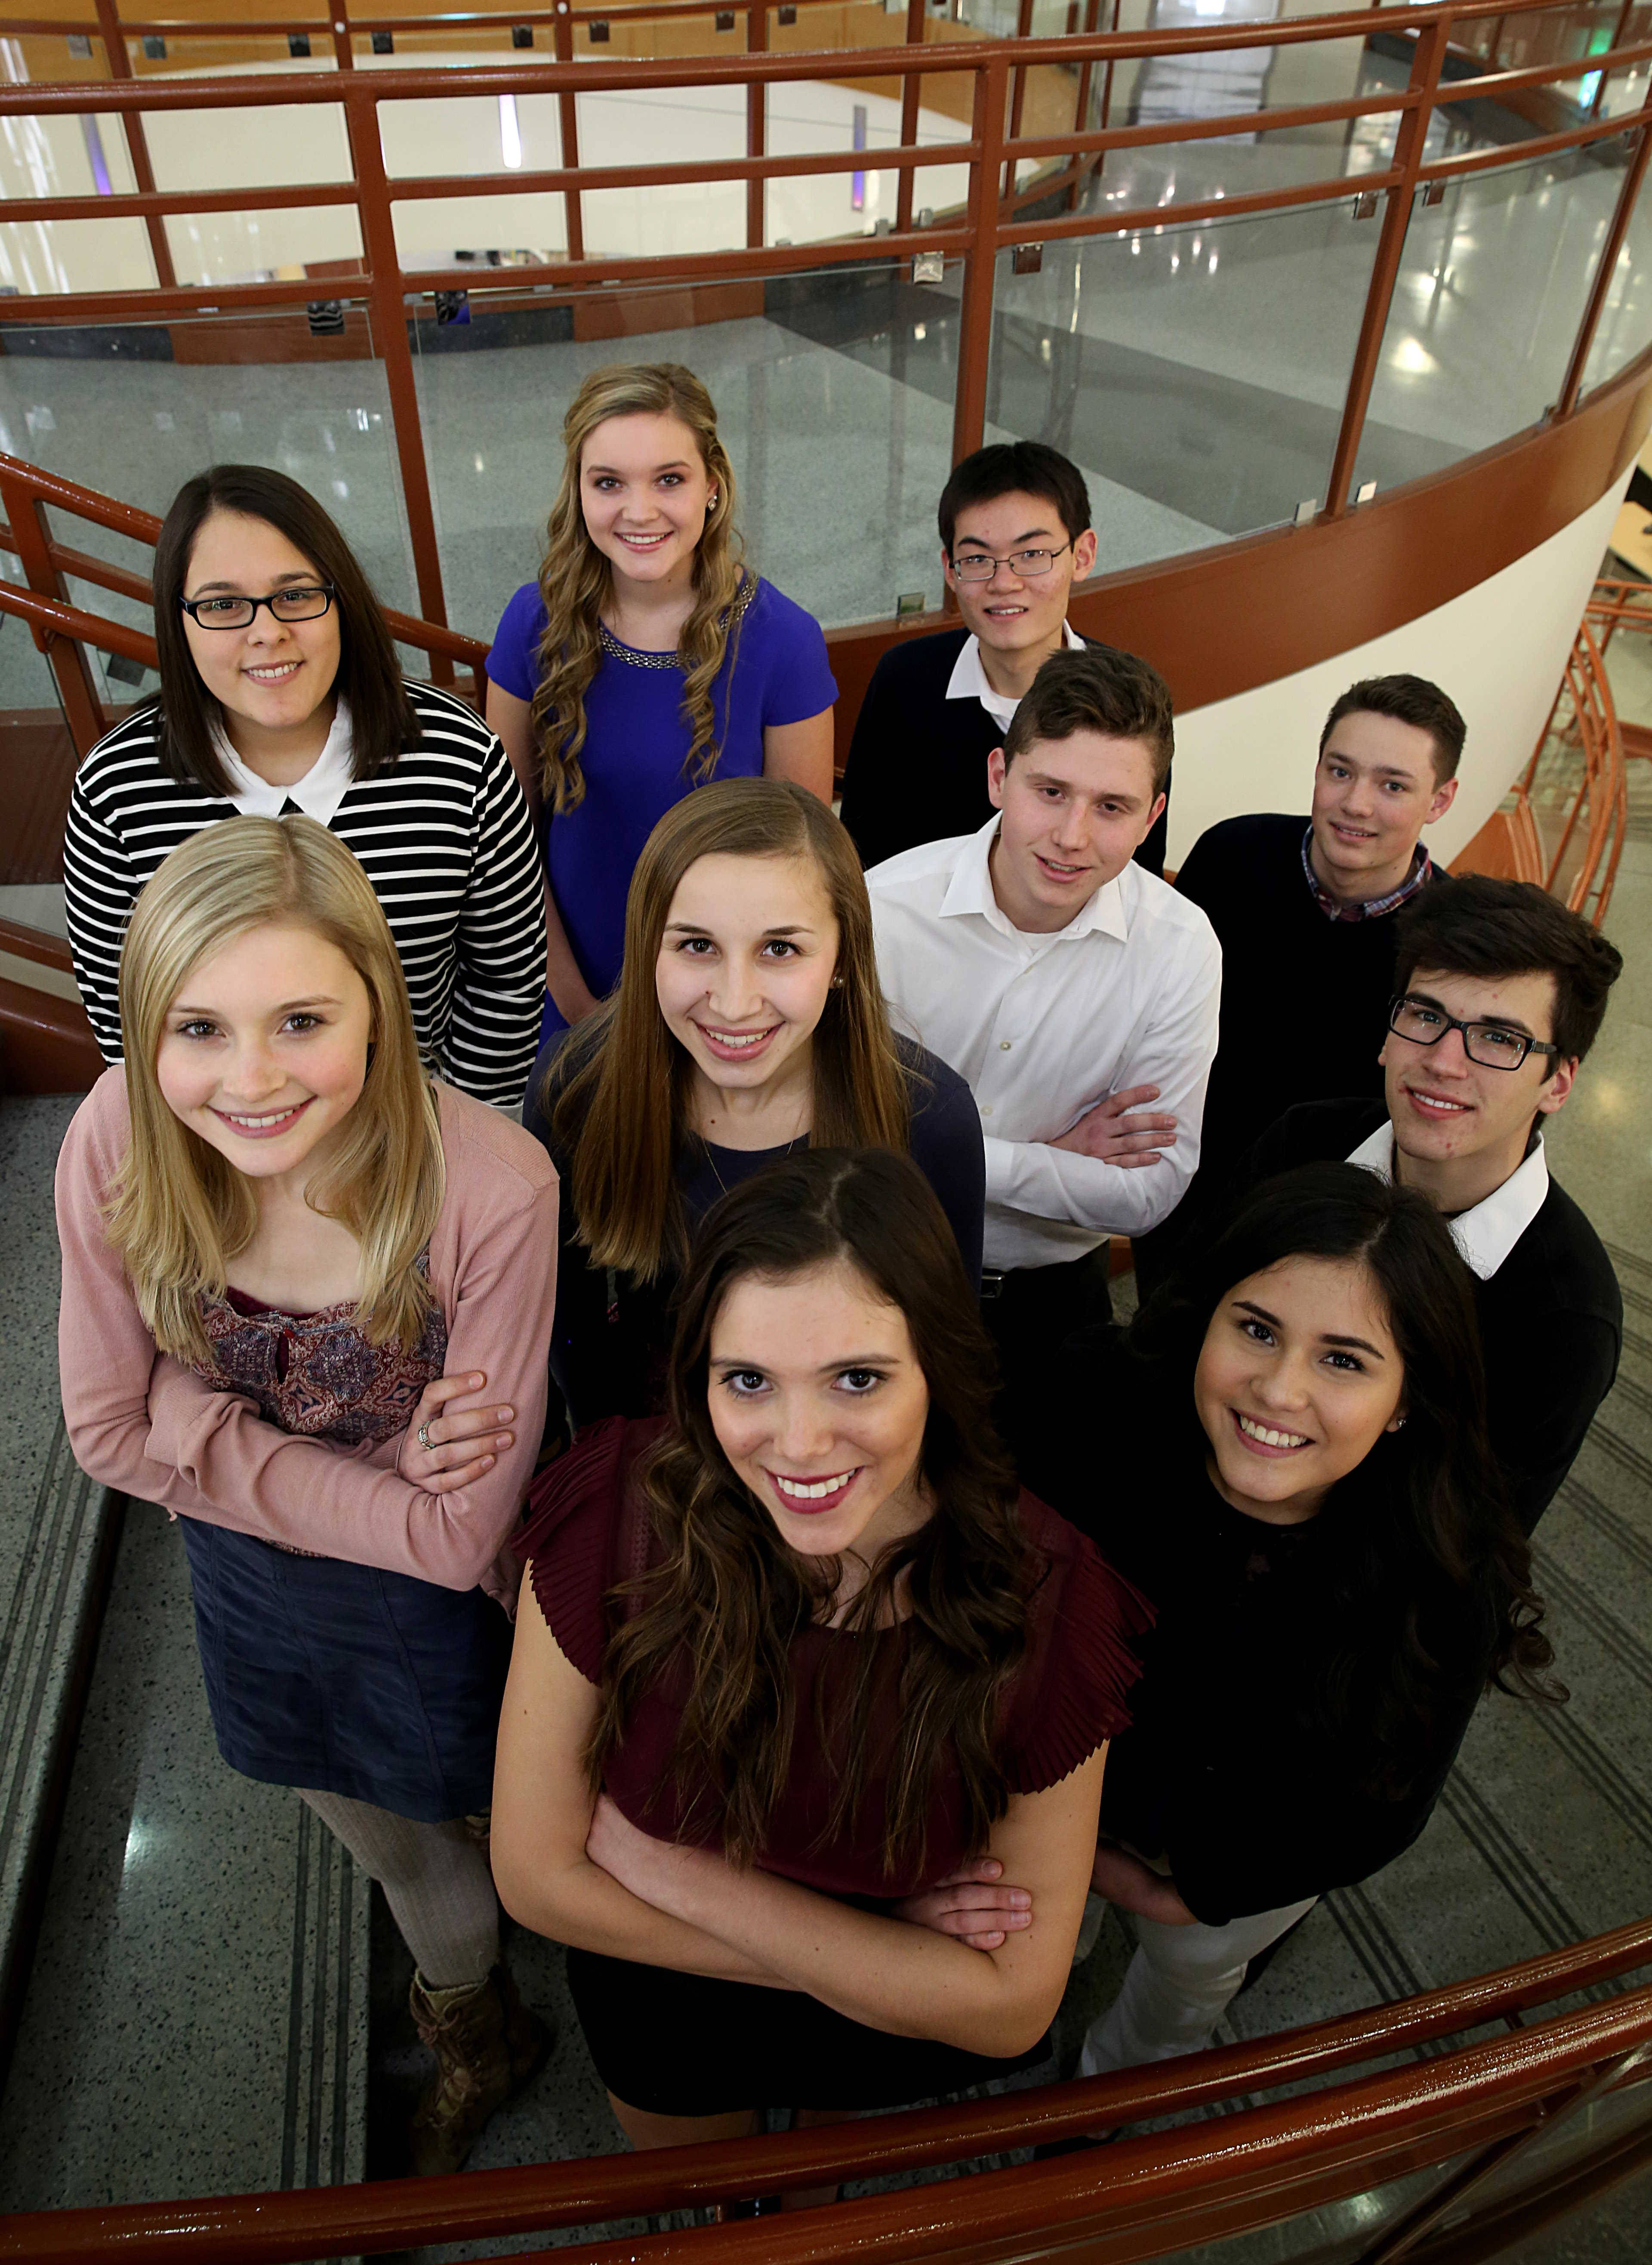 The Daily Herald's Fox Valley Leadership Team includes, top row from left, Jessica Freese, Hampshire High School; Claire Miller, St. Charles North High School; and William Tong of Illinois Math and Science Academy; middle row, from left, Grace Keegan of Geneva High School; Kristi Isola of Cary-Grove High School; Peter Williams of Harvest Christian Academy; and Jacob Fiedler of Marian Central High School; and bottom row from left, Ivana Dulanto of Cary-Grove High School; Maria Morales of Elgin High School; and Henry Feldhaus of Aurora Central Catholic High School.